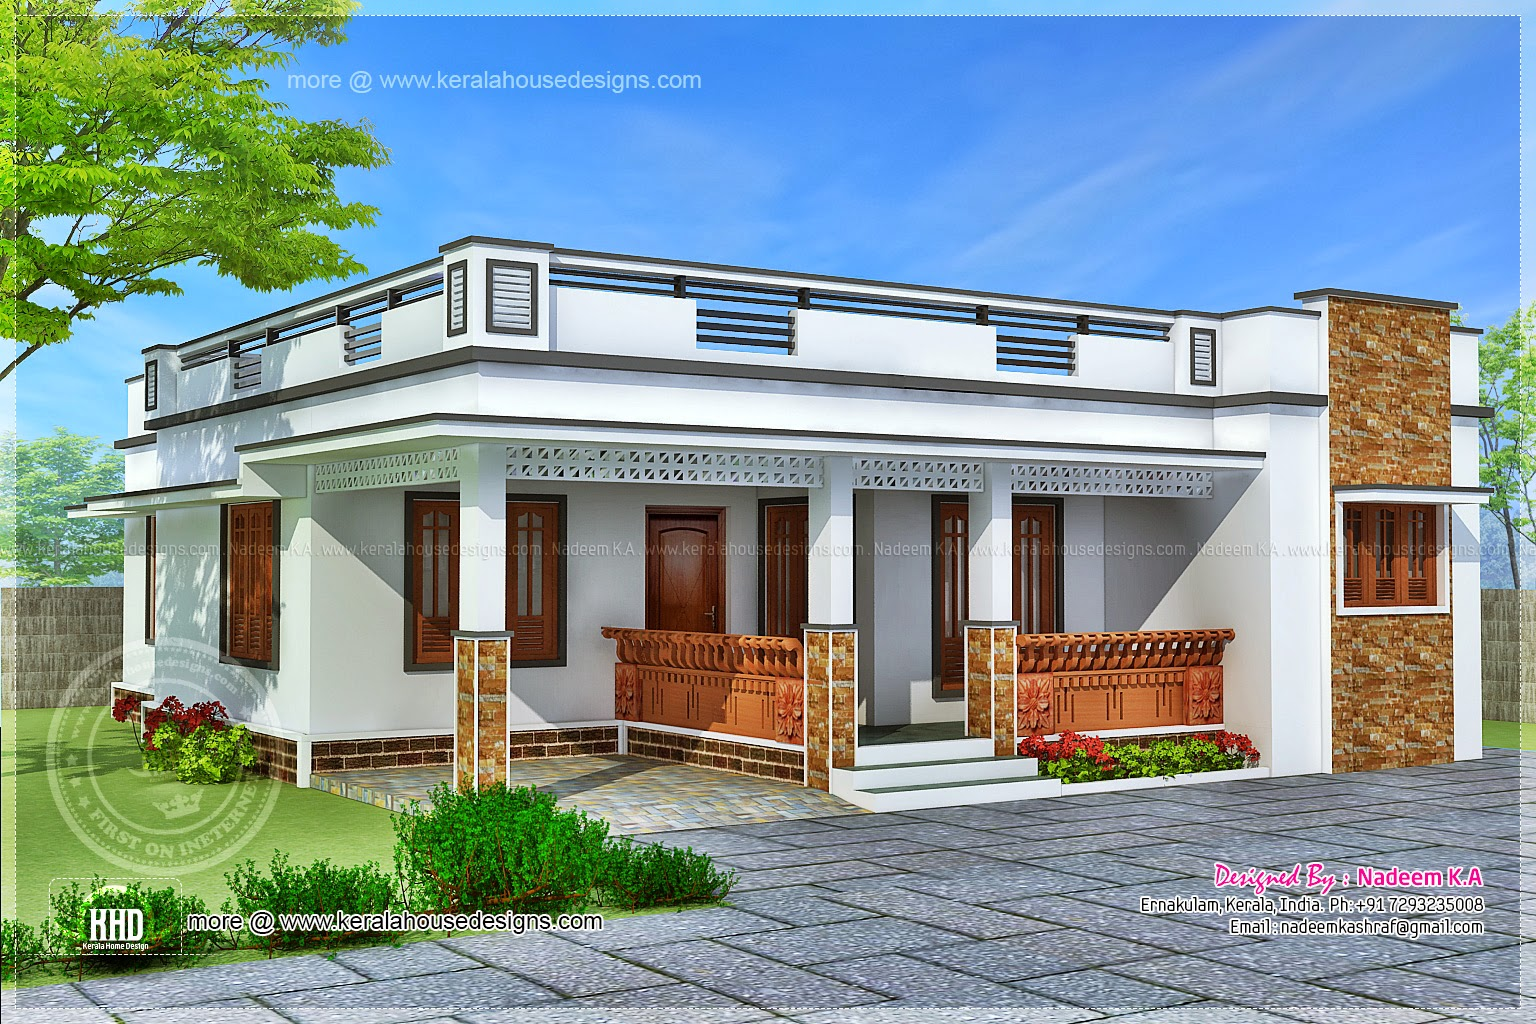 3 bedroom 1504 square feet house exterior home kerala plans for Indian home exterior design photos middle class